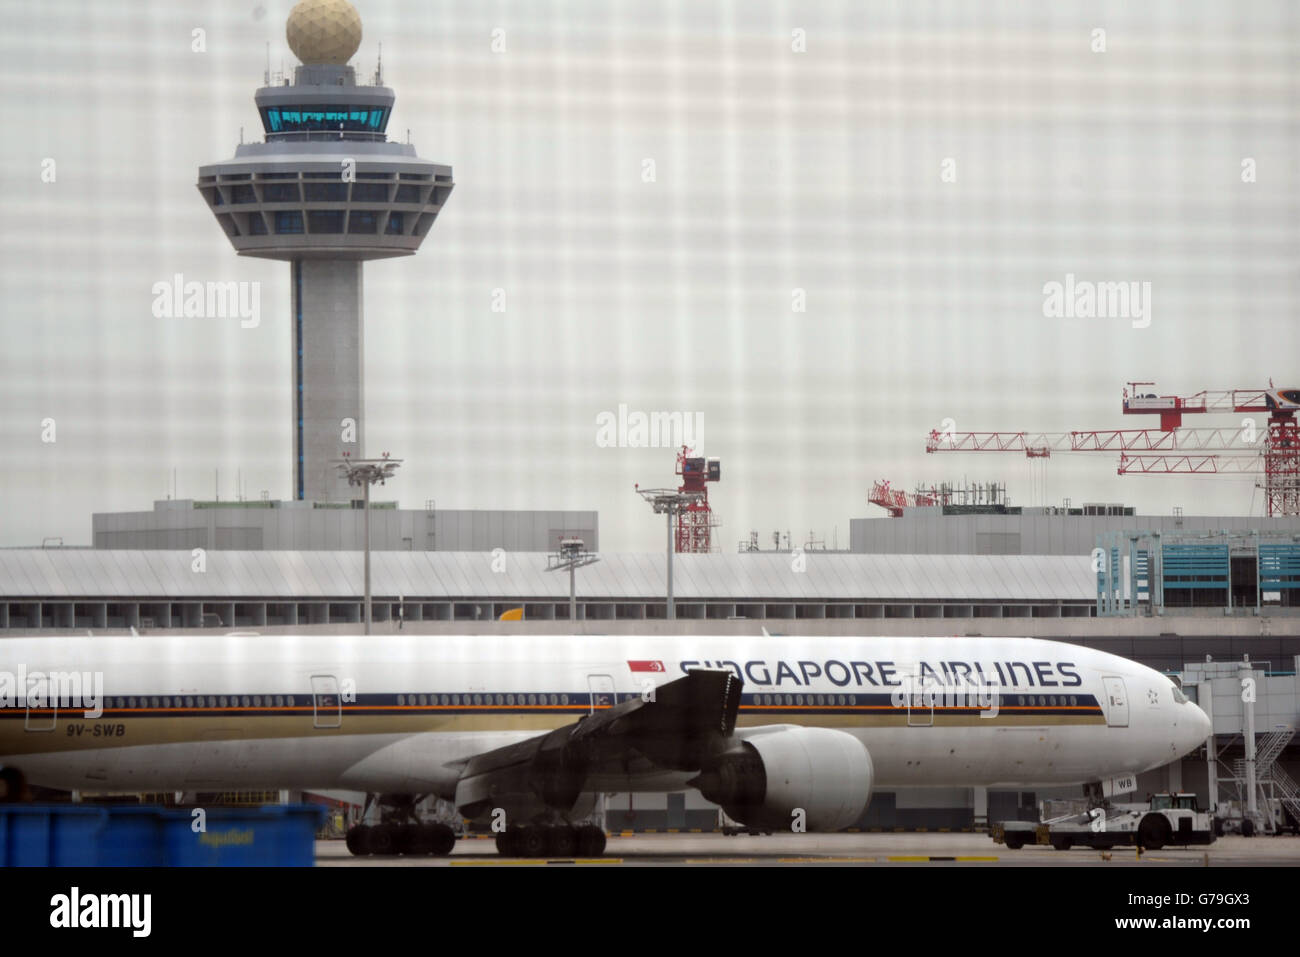 Singapore. 27th June, 2016. Photo taken on June 27, 2016 shows Singapore Airlines (SIA) flight SQ368 with its burnt - Stock Image